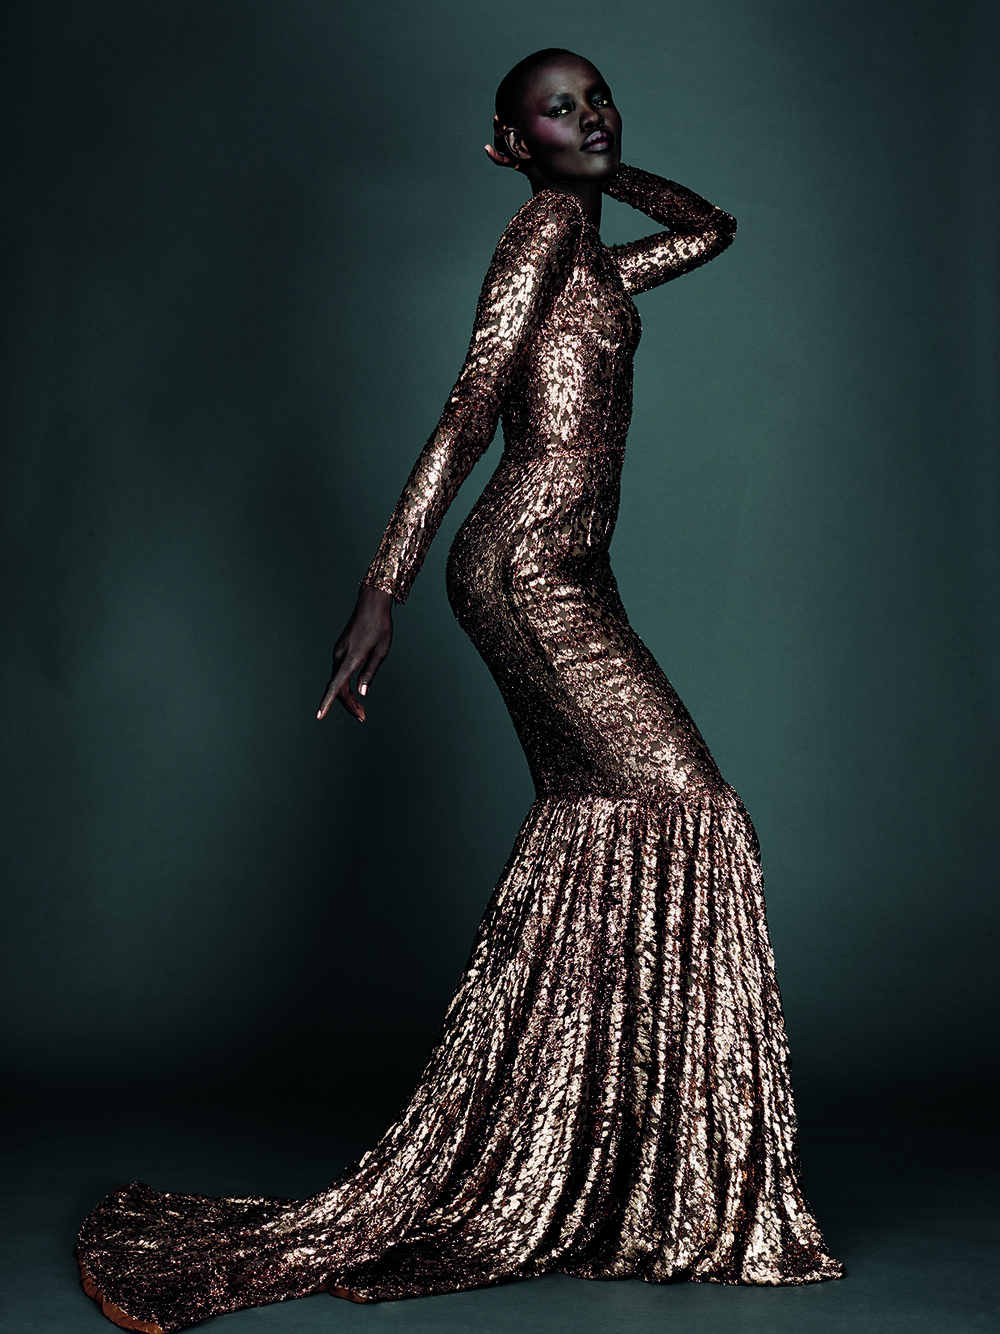 Grace Bol, photo by Alexi Lubomirski - diverse beauty